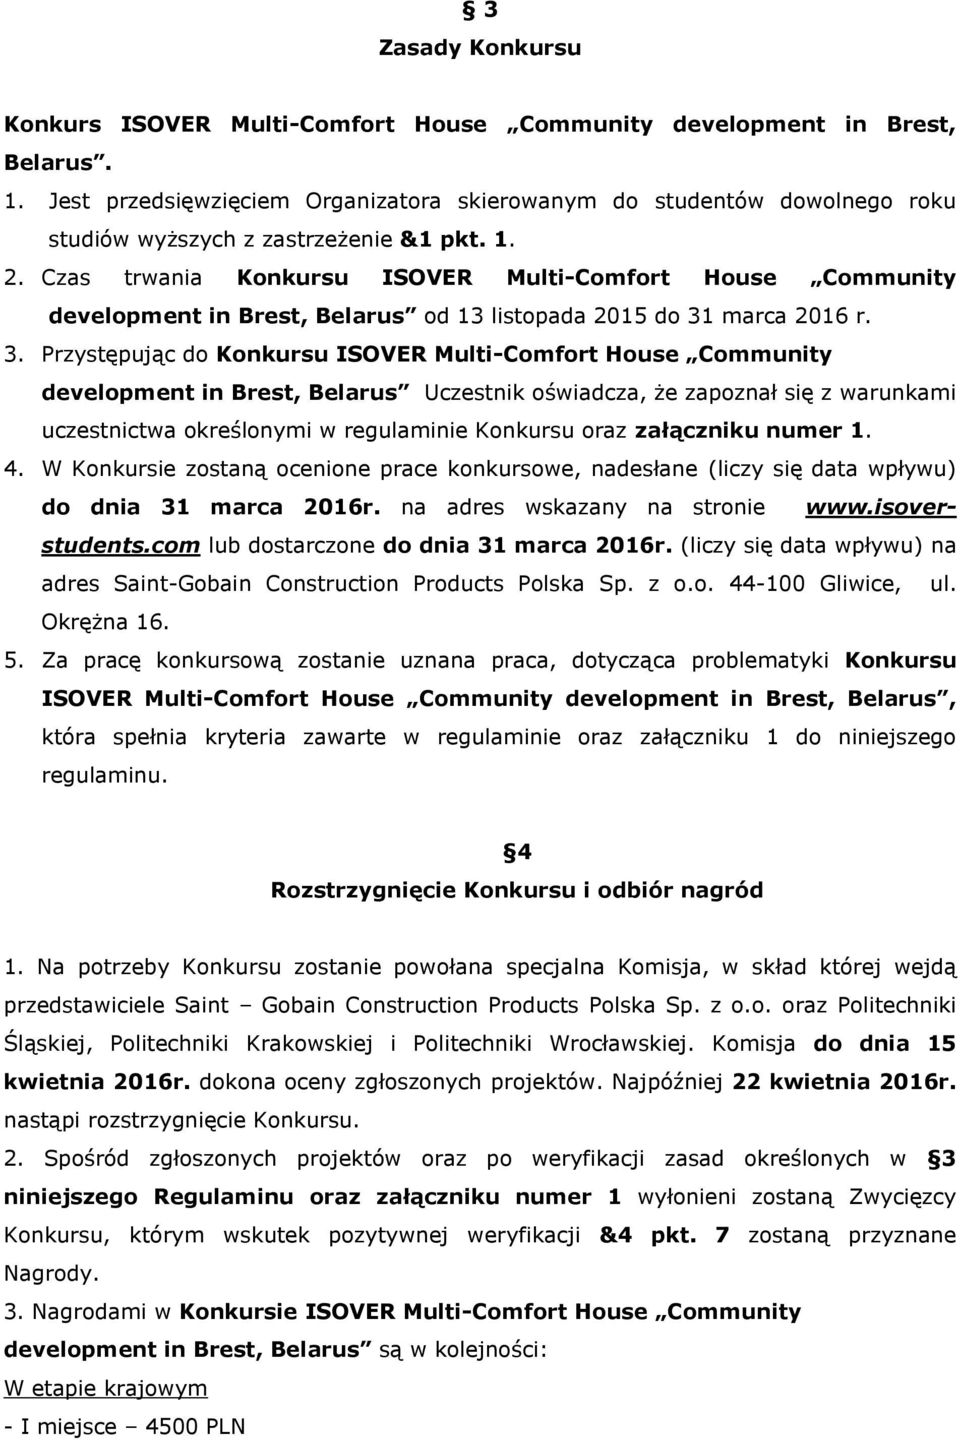 Czas trwania Konkursu ISOVER Multi-Comfort House Community development in Brest, Belarus od 13 listopada 2015 do 31